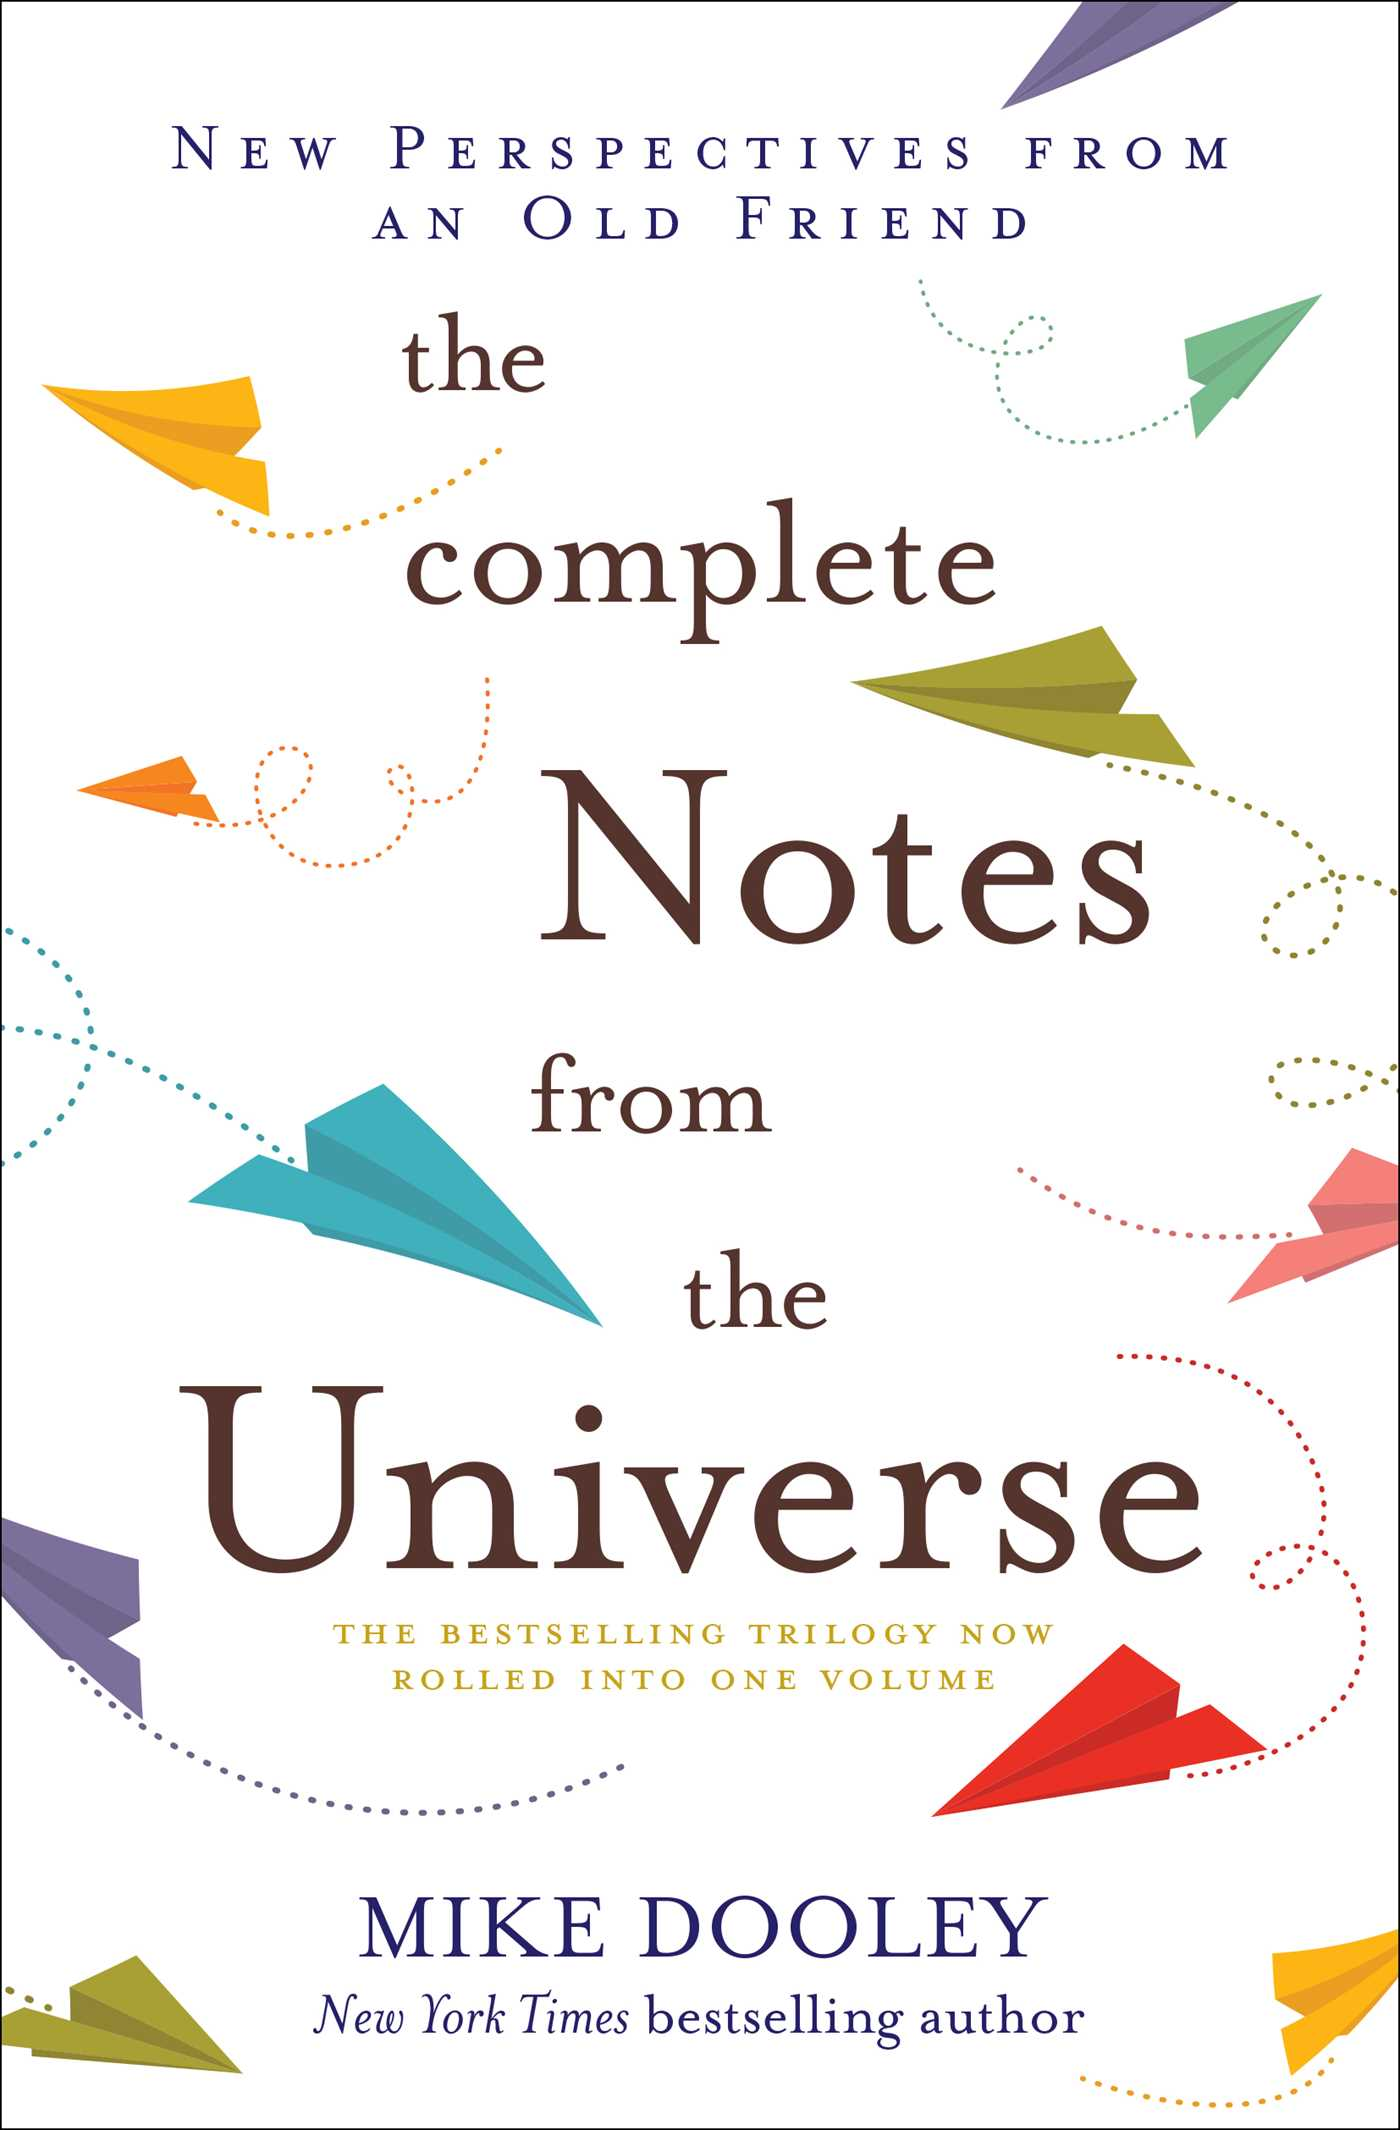 The Complete Notes From the UniversebyMike Dooley